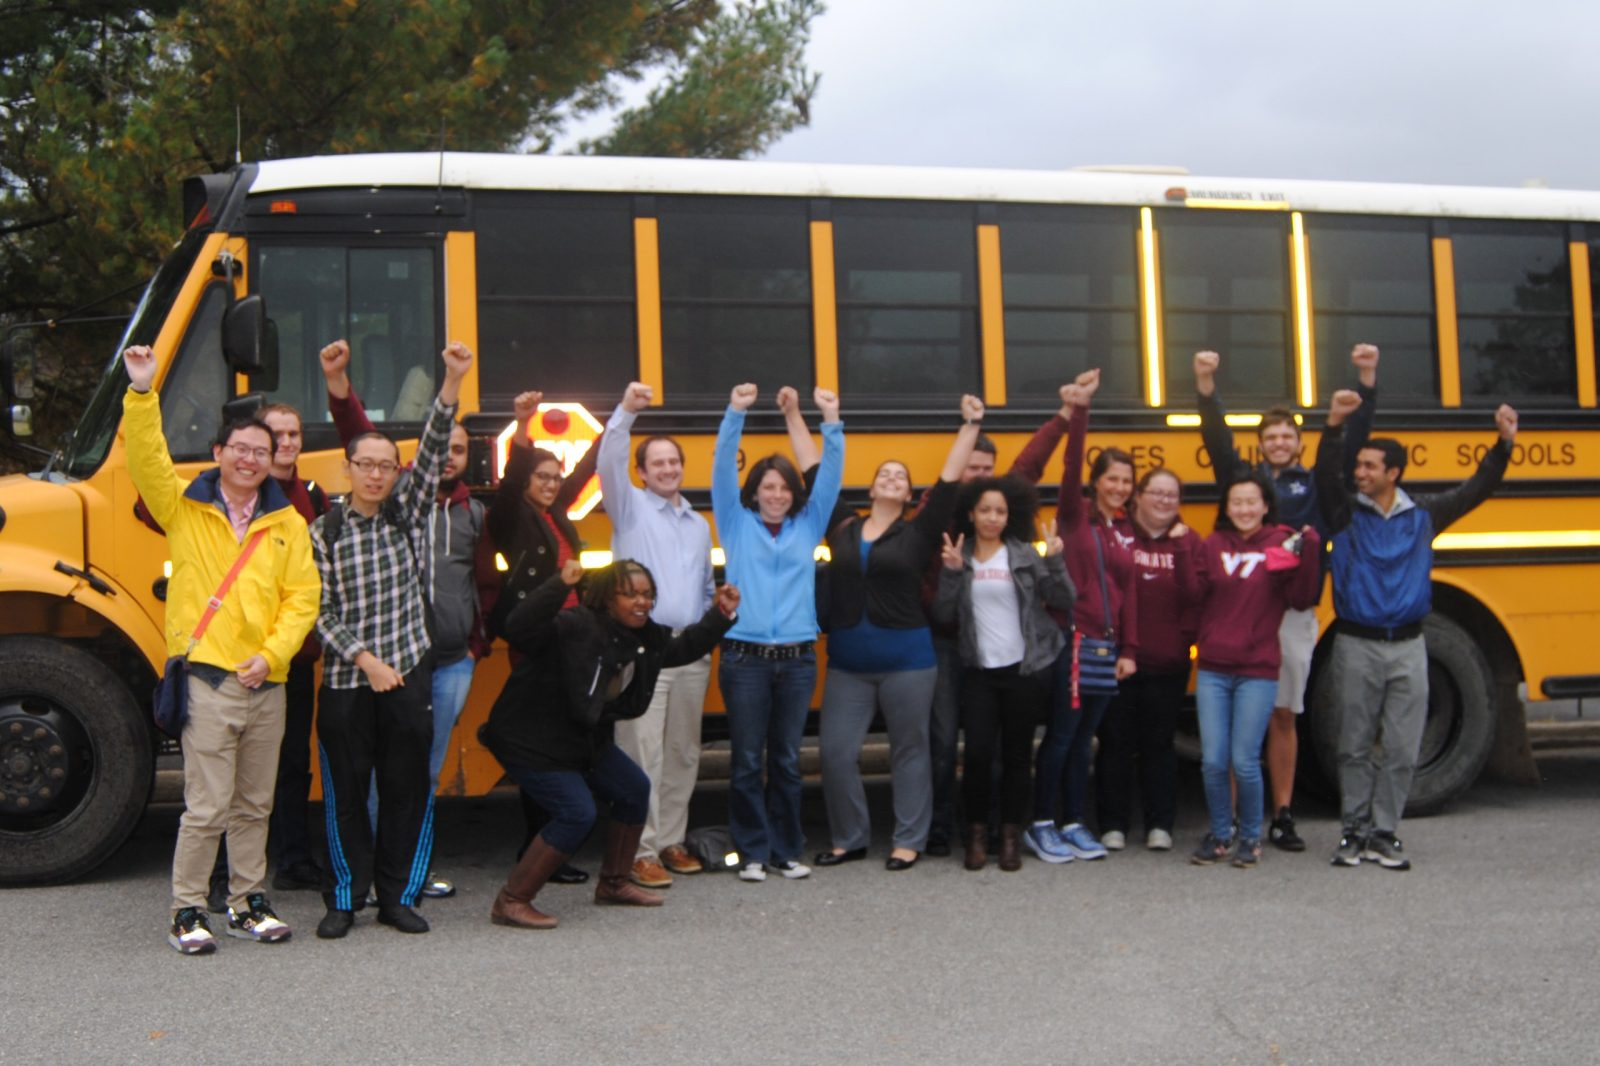 This photo shows 16 young adults posing with a yellow school bus behind them. Their arms are raised over their heads and they are smiling.